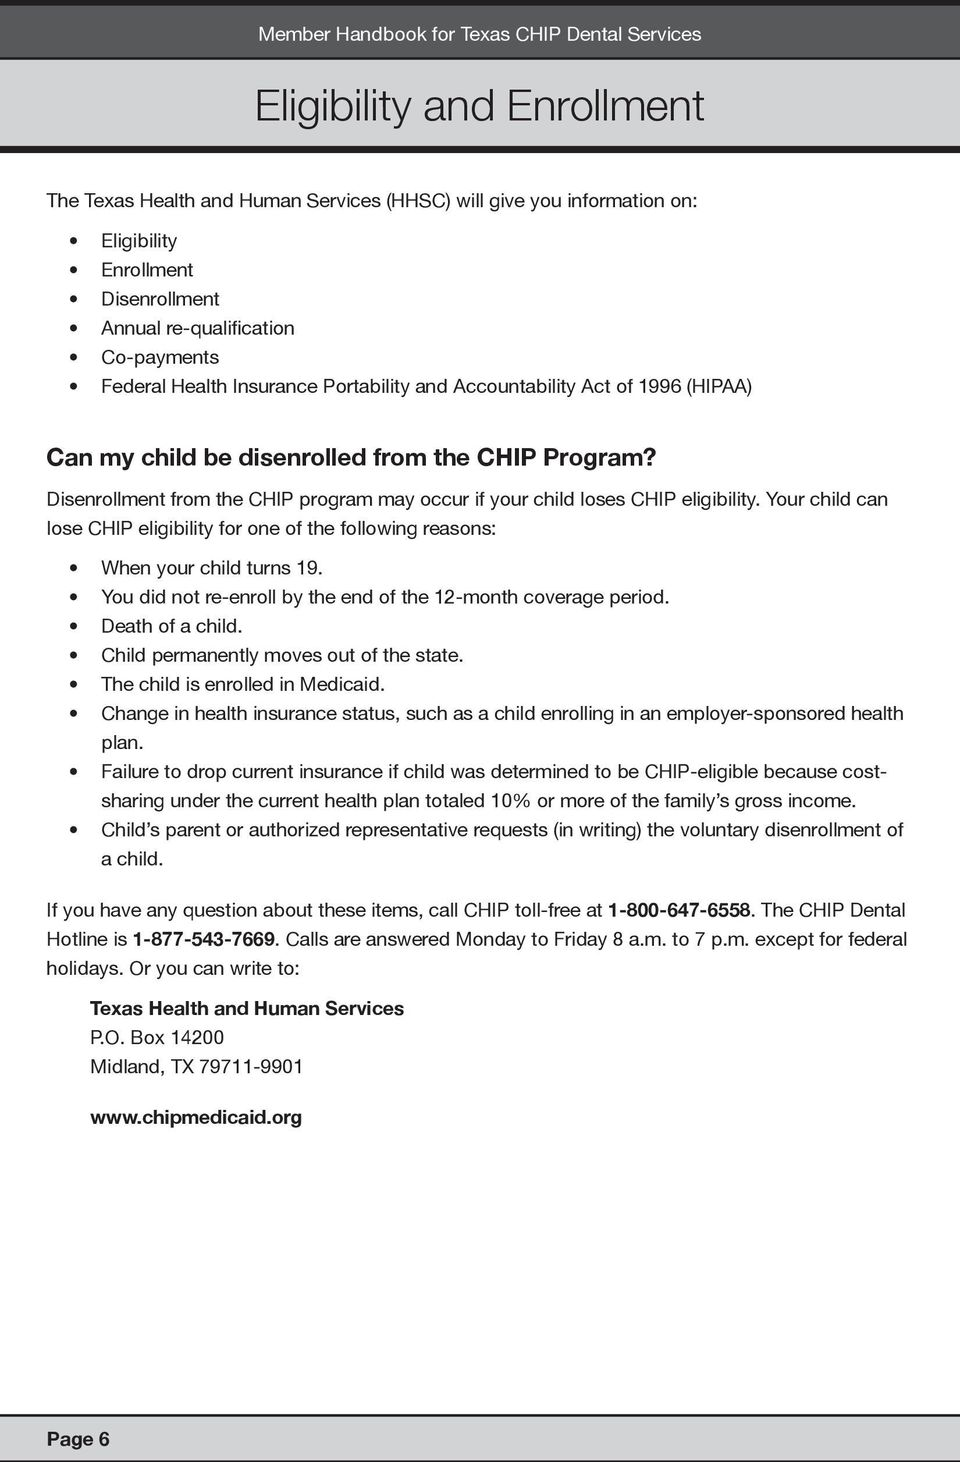 Disenrollment from the CHIP program may occur if your child loses CHIP eligibility. Your child can lose CHIP eligibility for one of the following reasons: When your child turns 19.